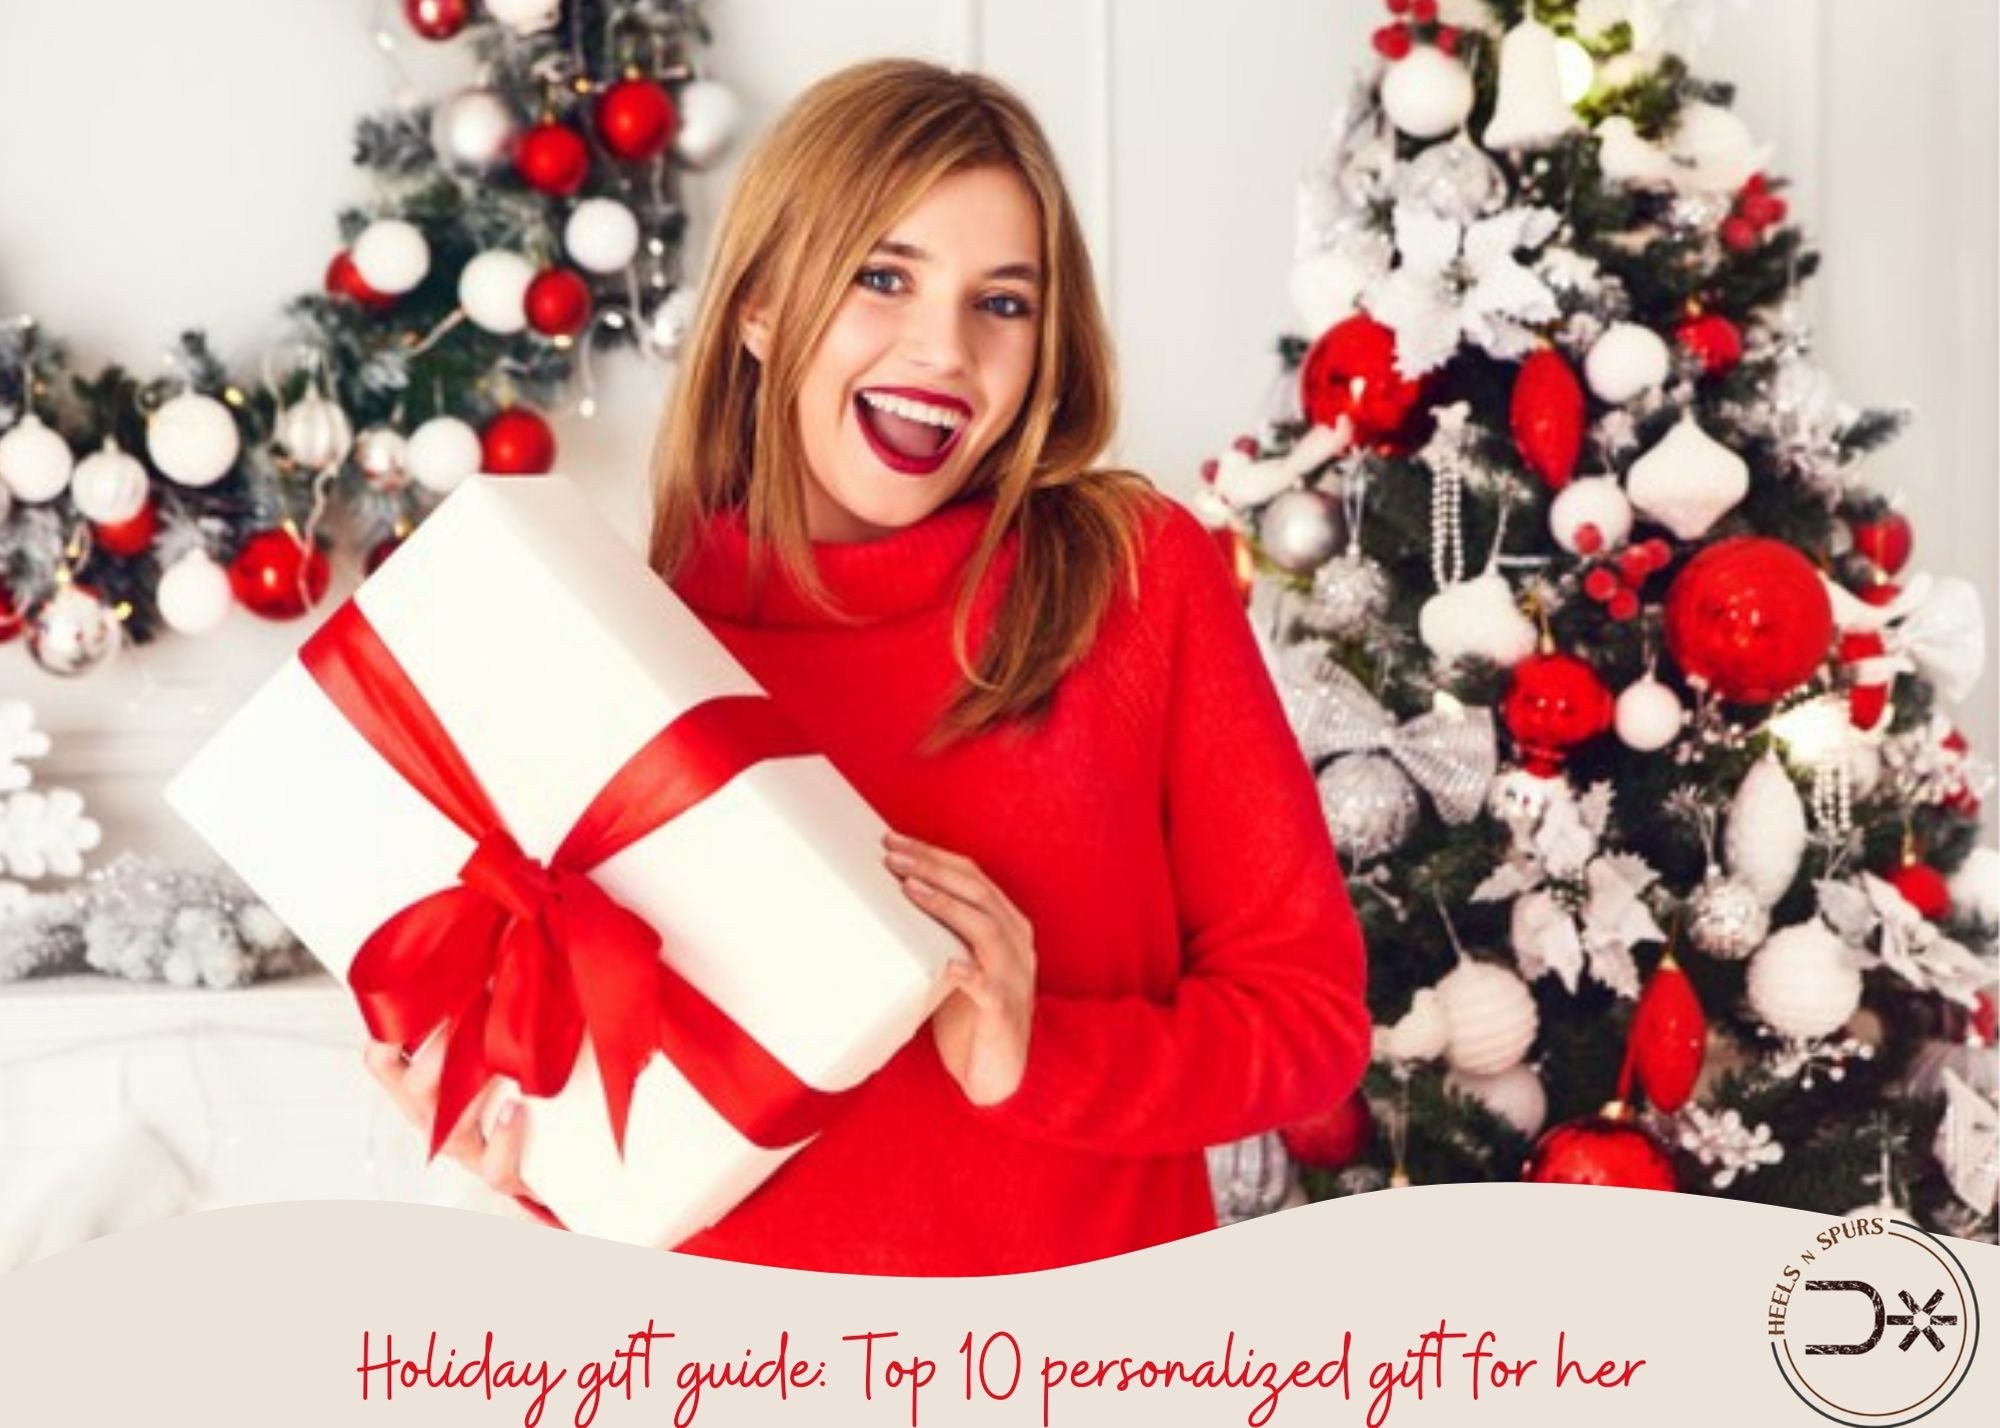 Holiday gift guide: top 10 personalized gift for her